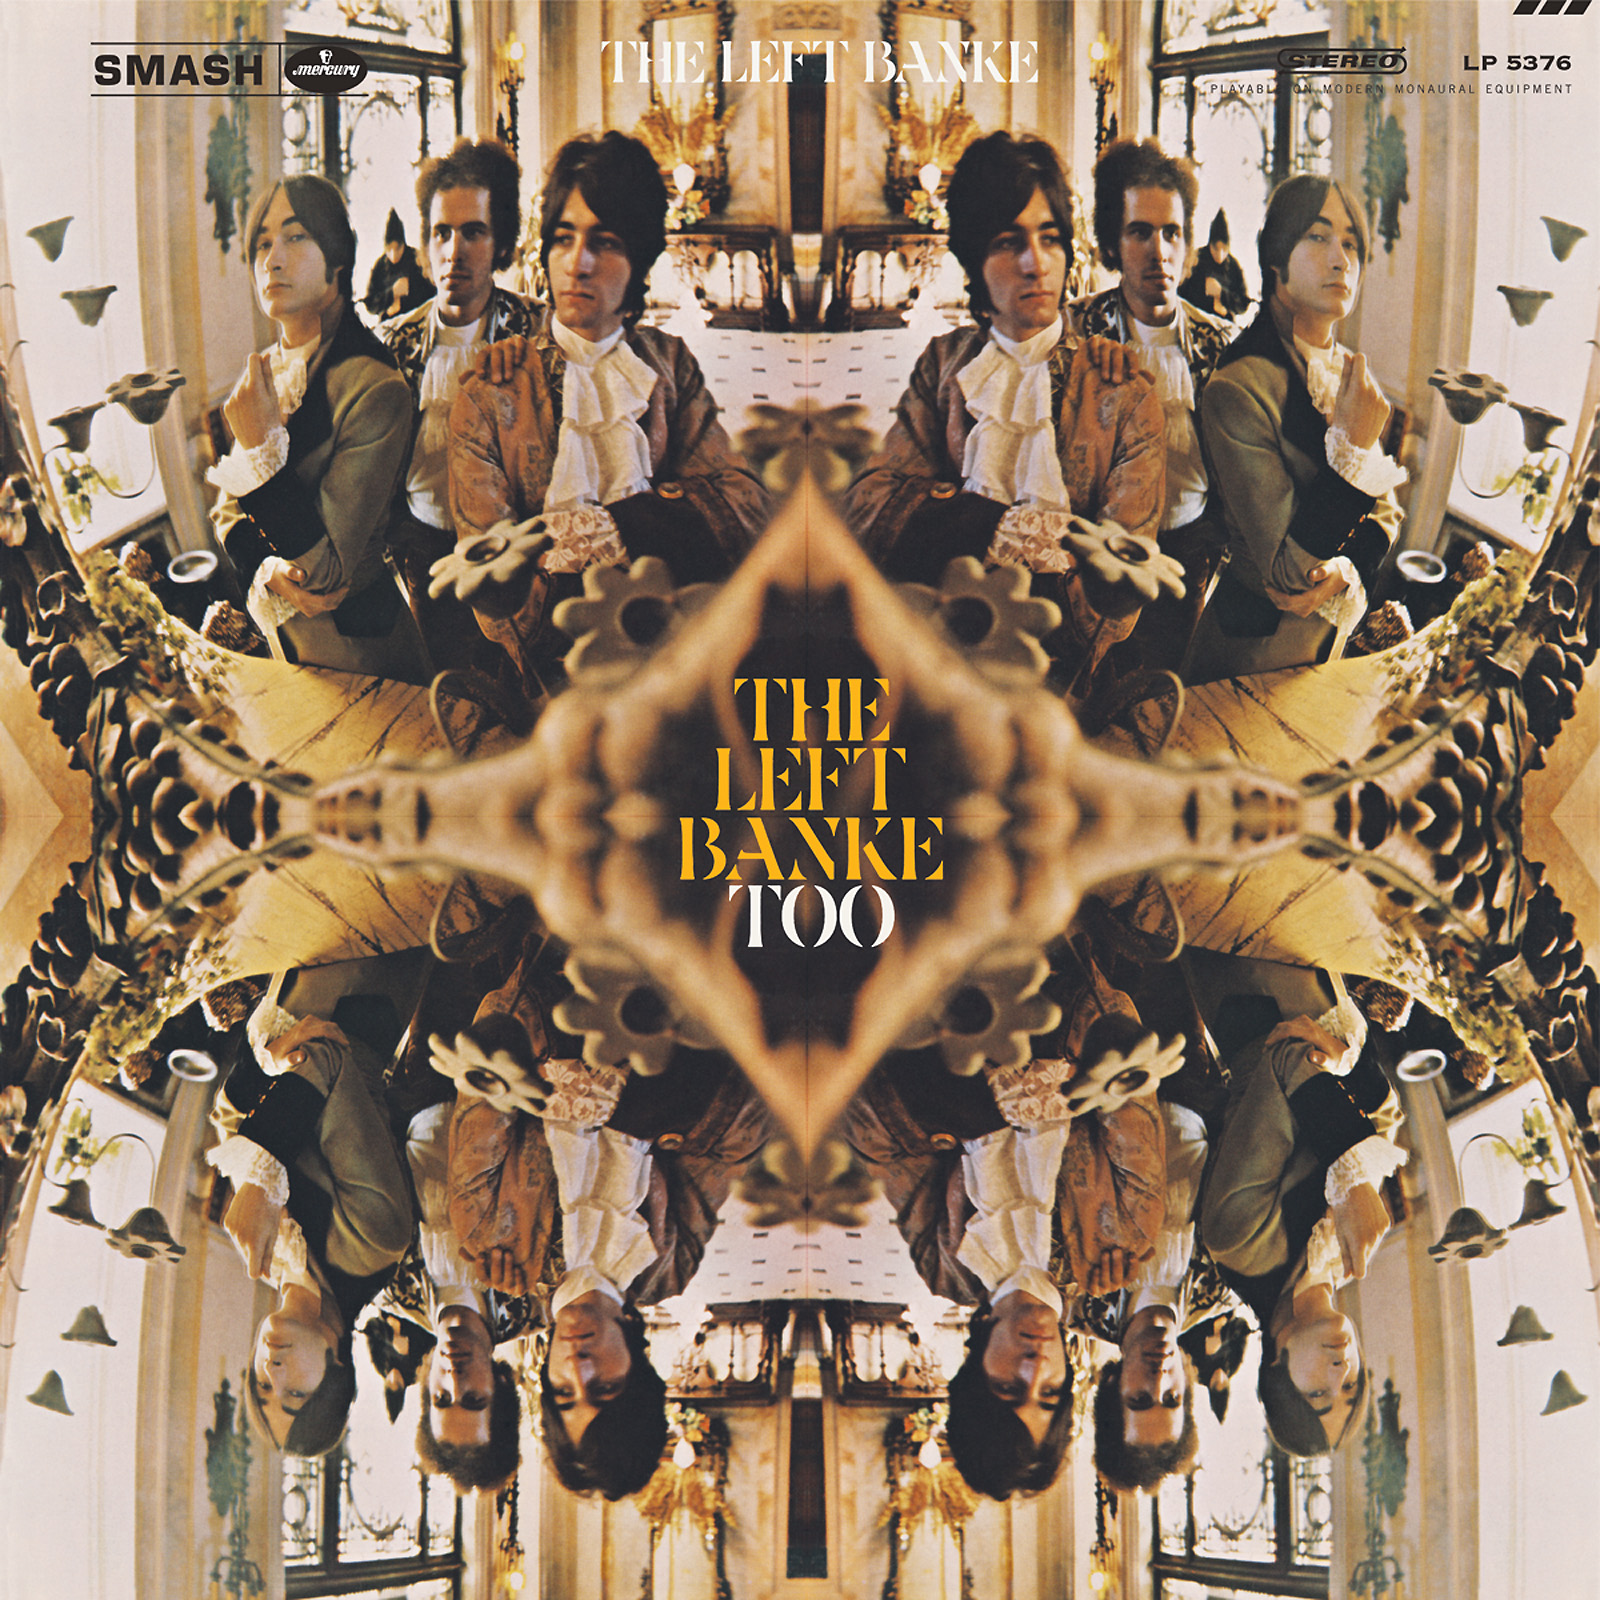 Left Banke, The - The Left Banke Too CD